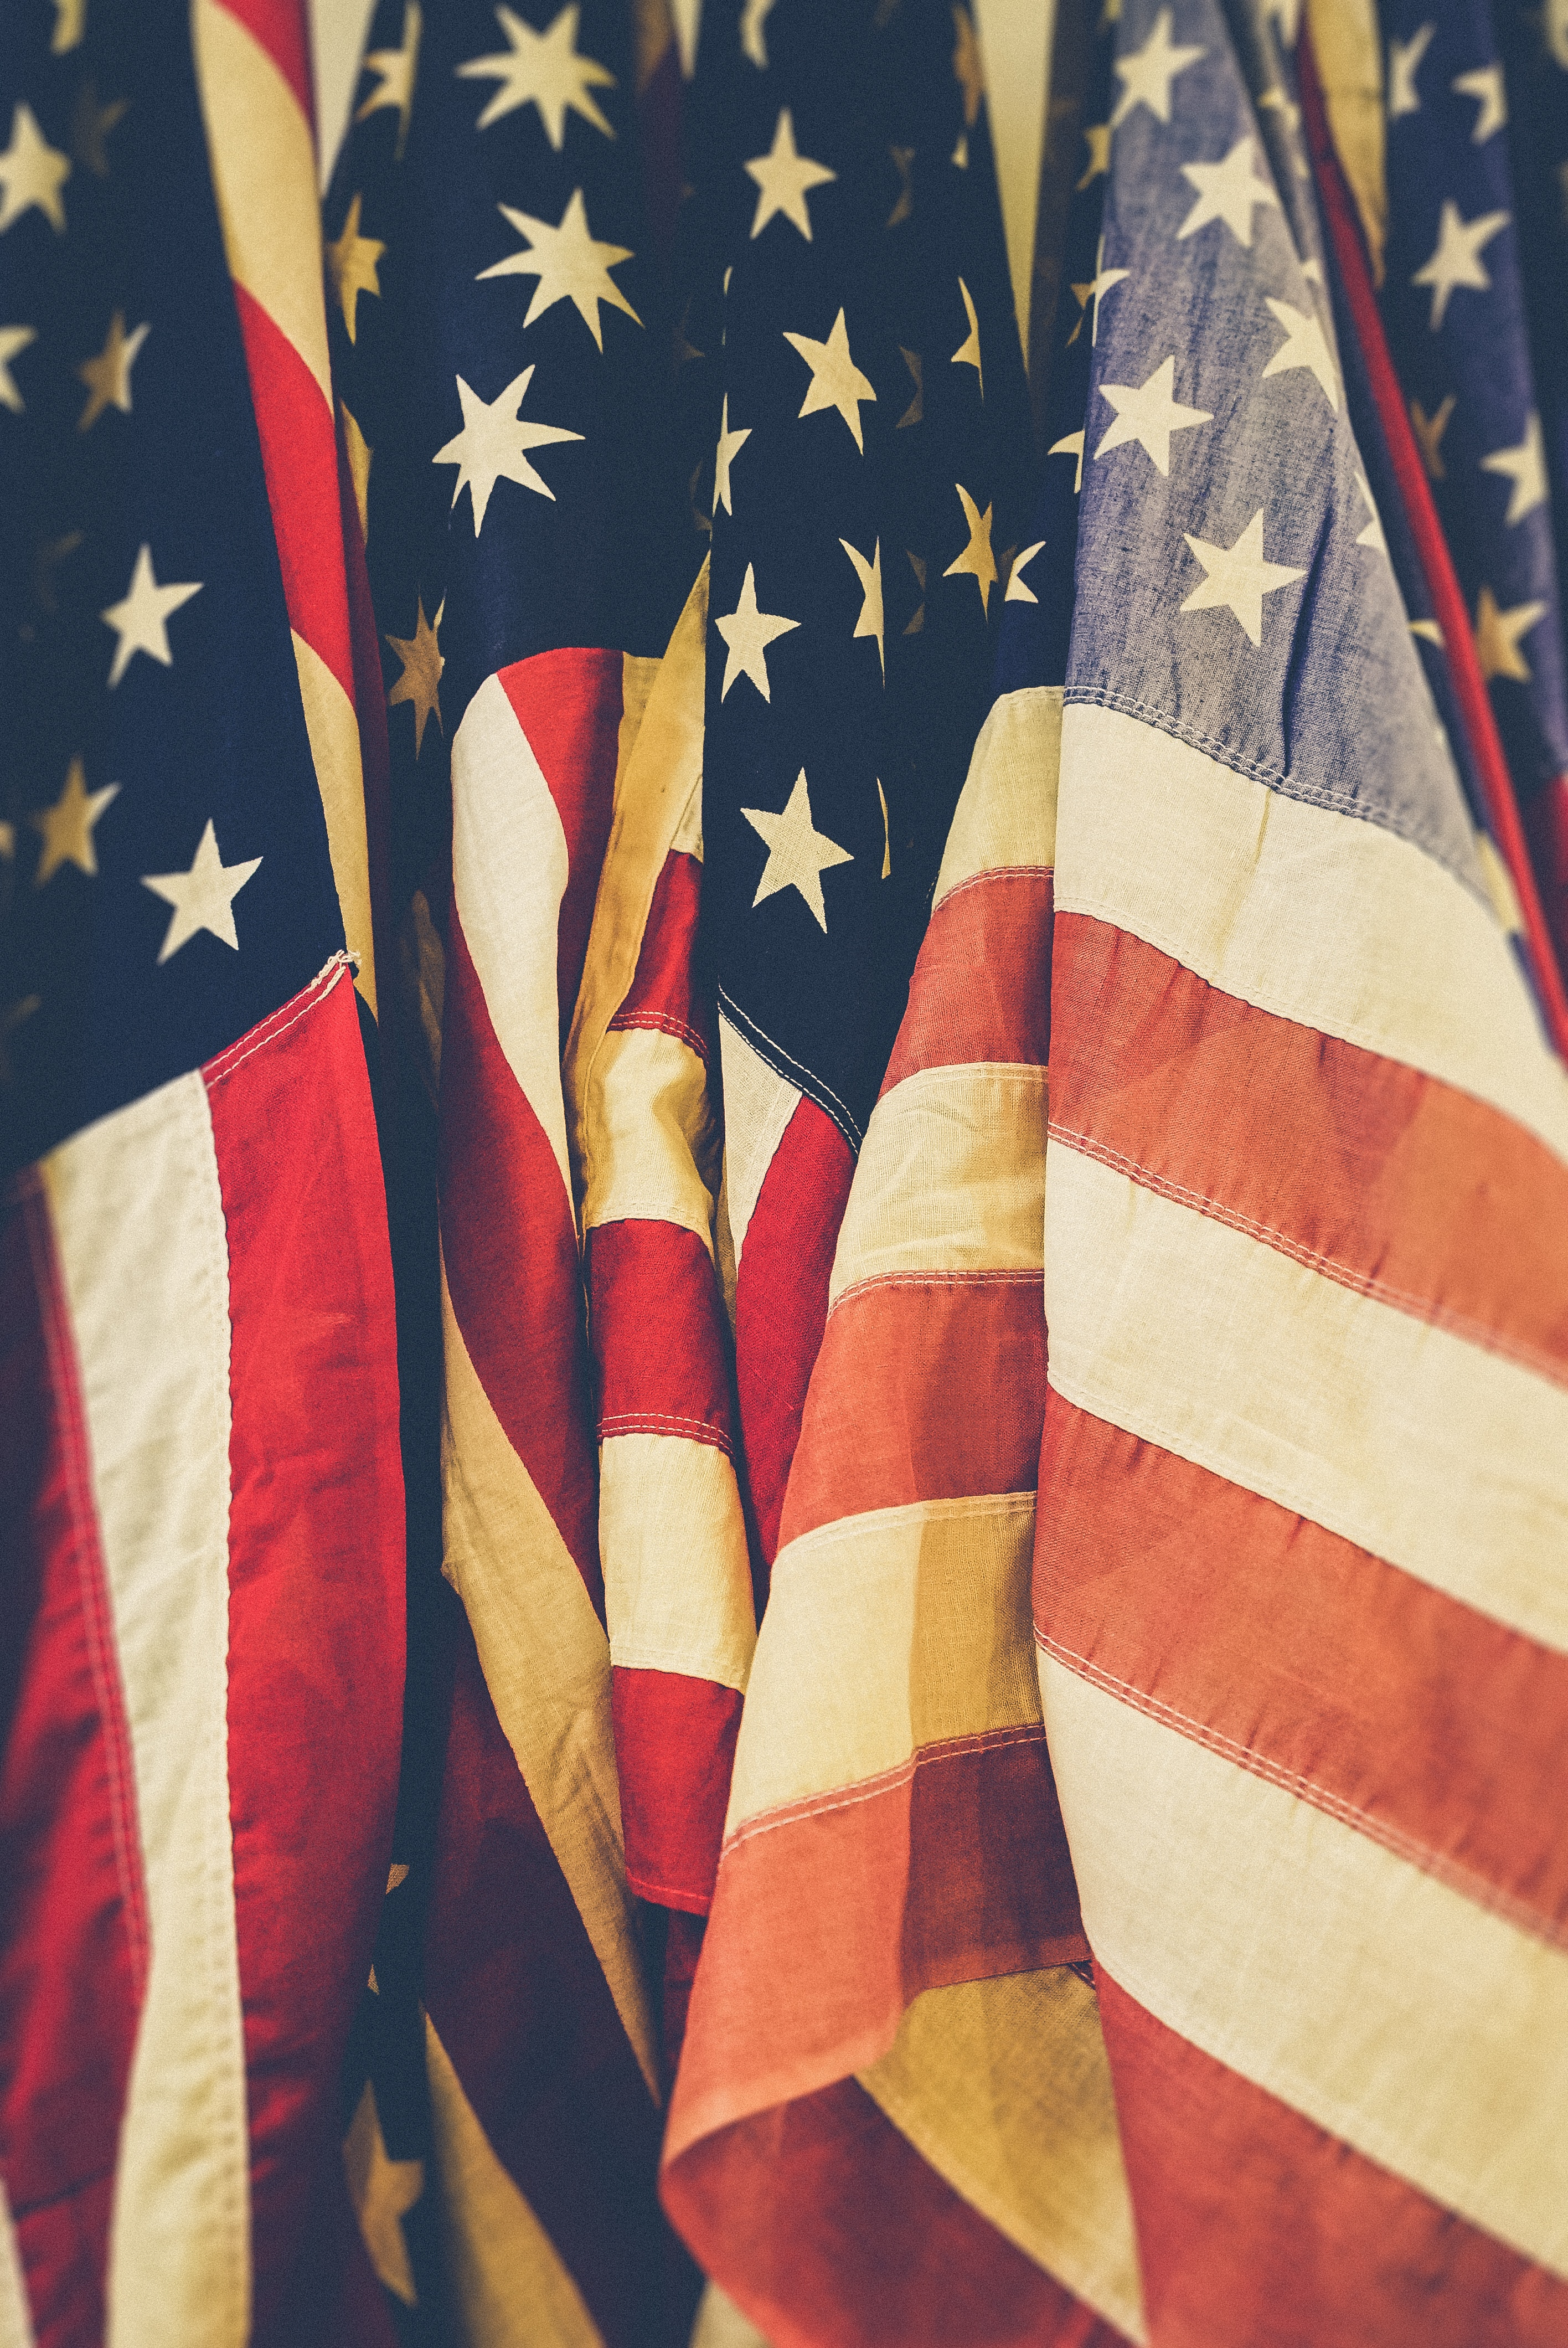 Framework for Unified Conservatism Creates Challenges